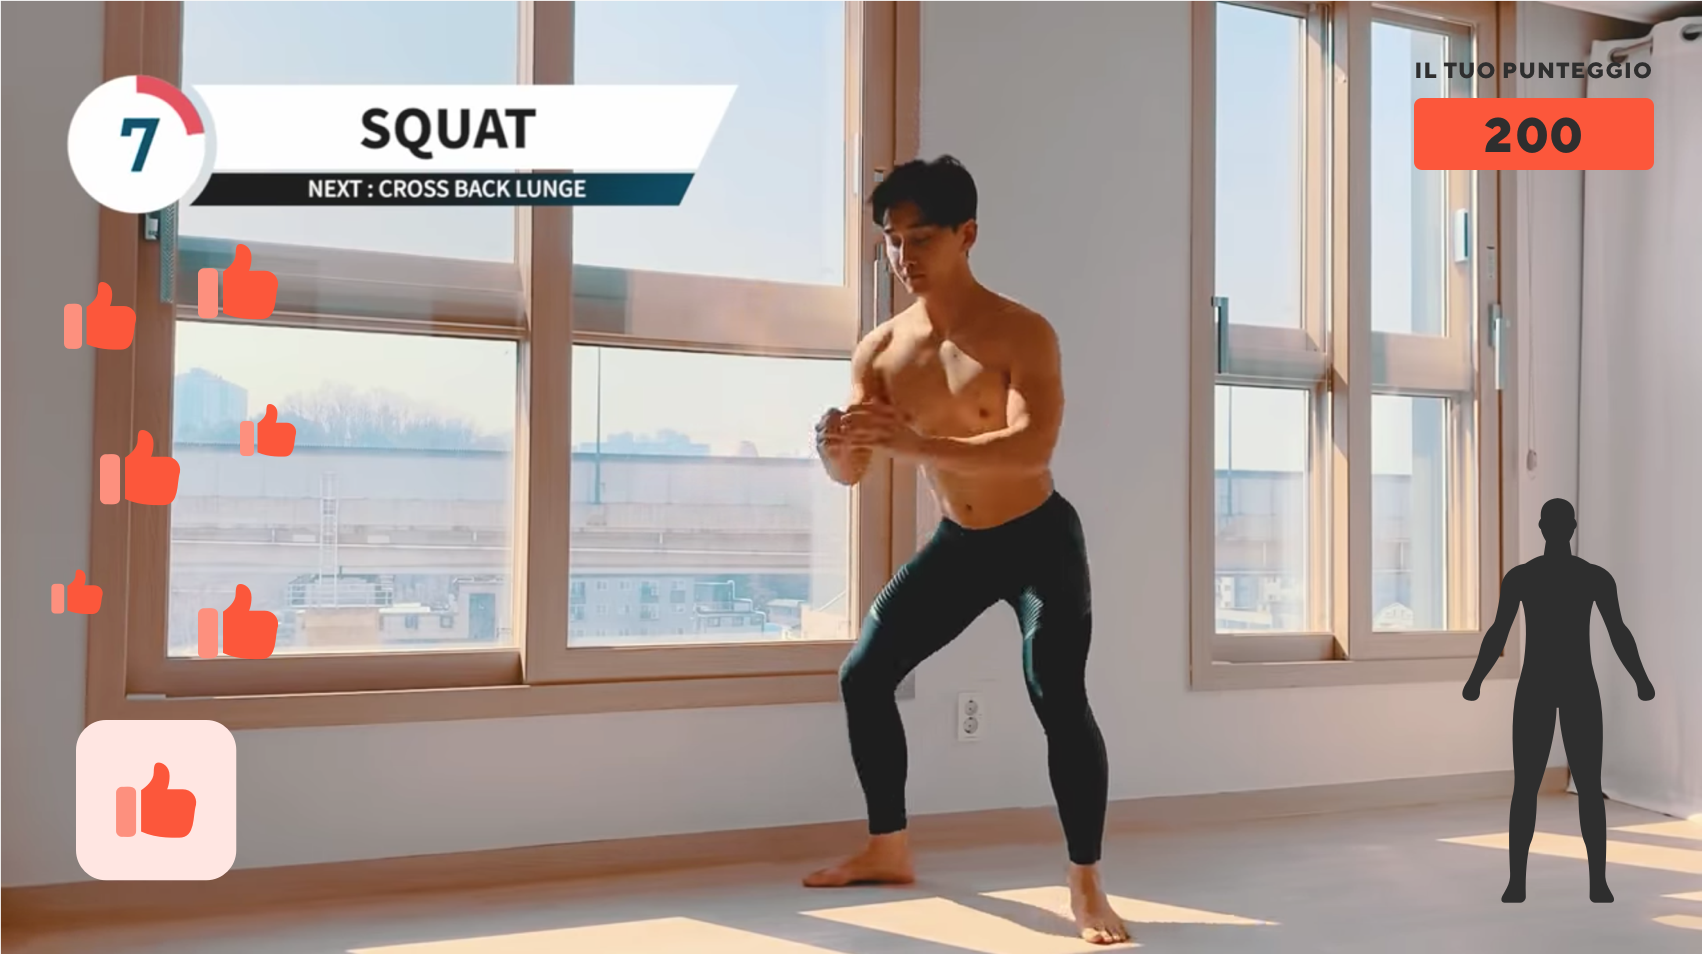 AI-powered fitness personal assistant